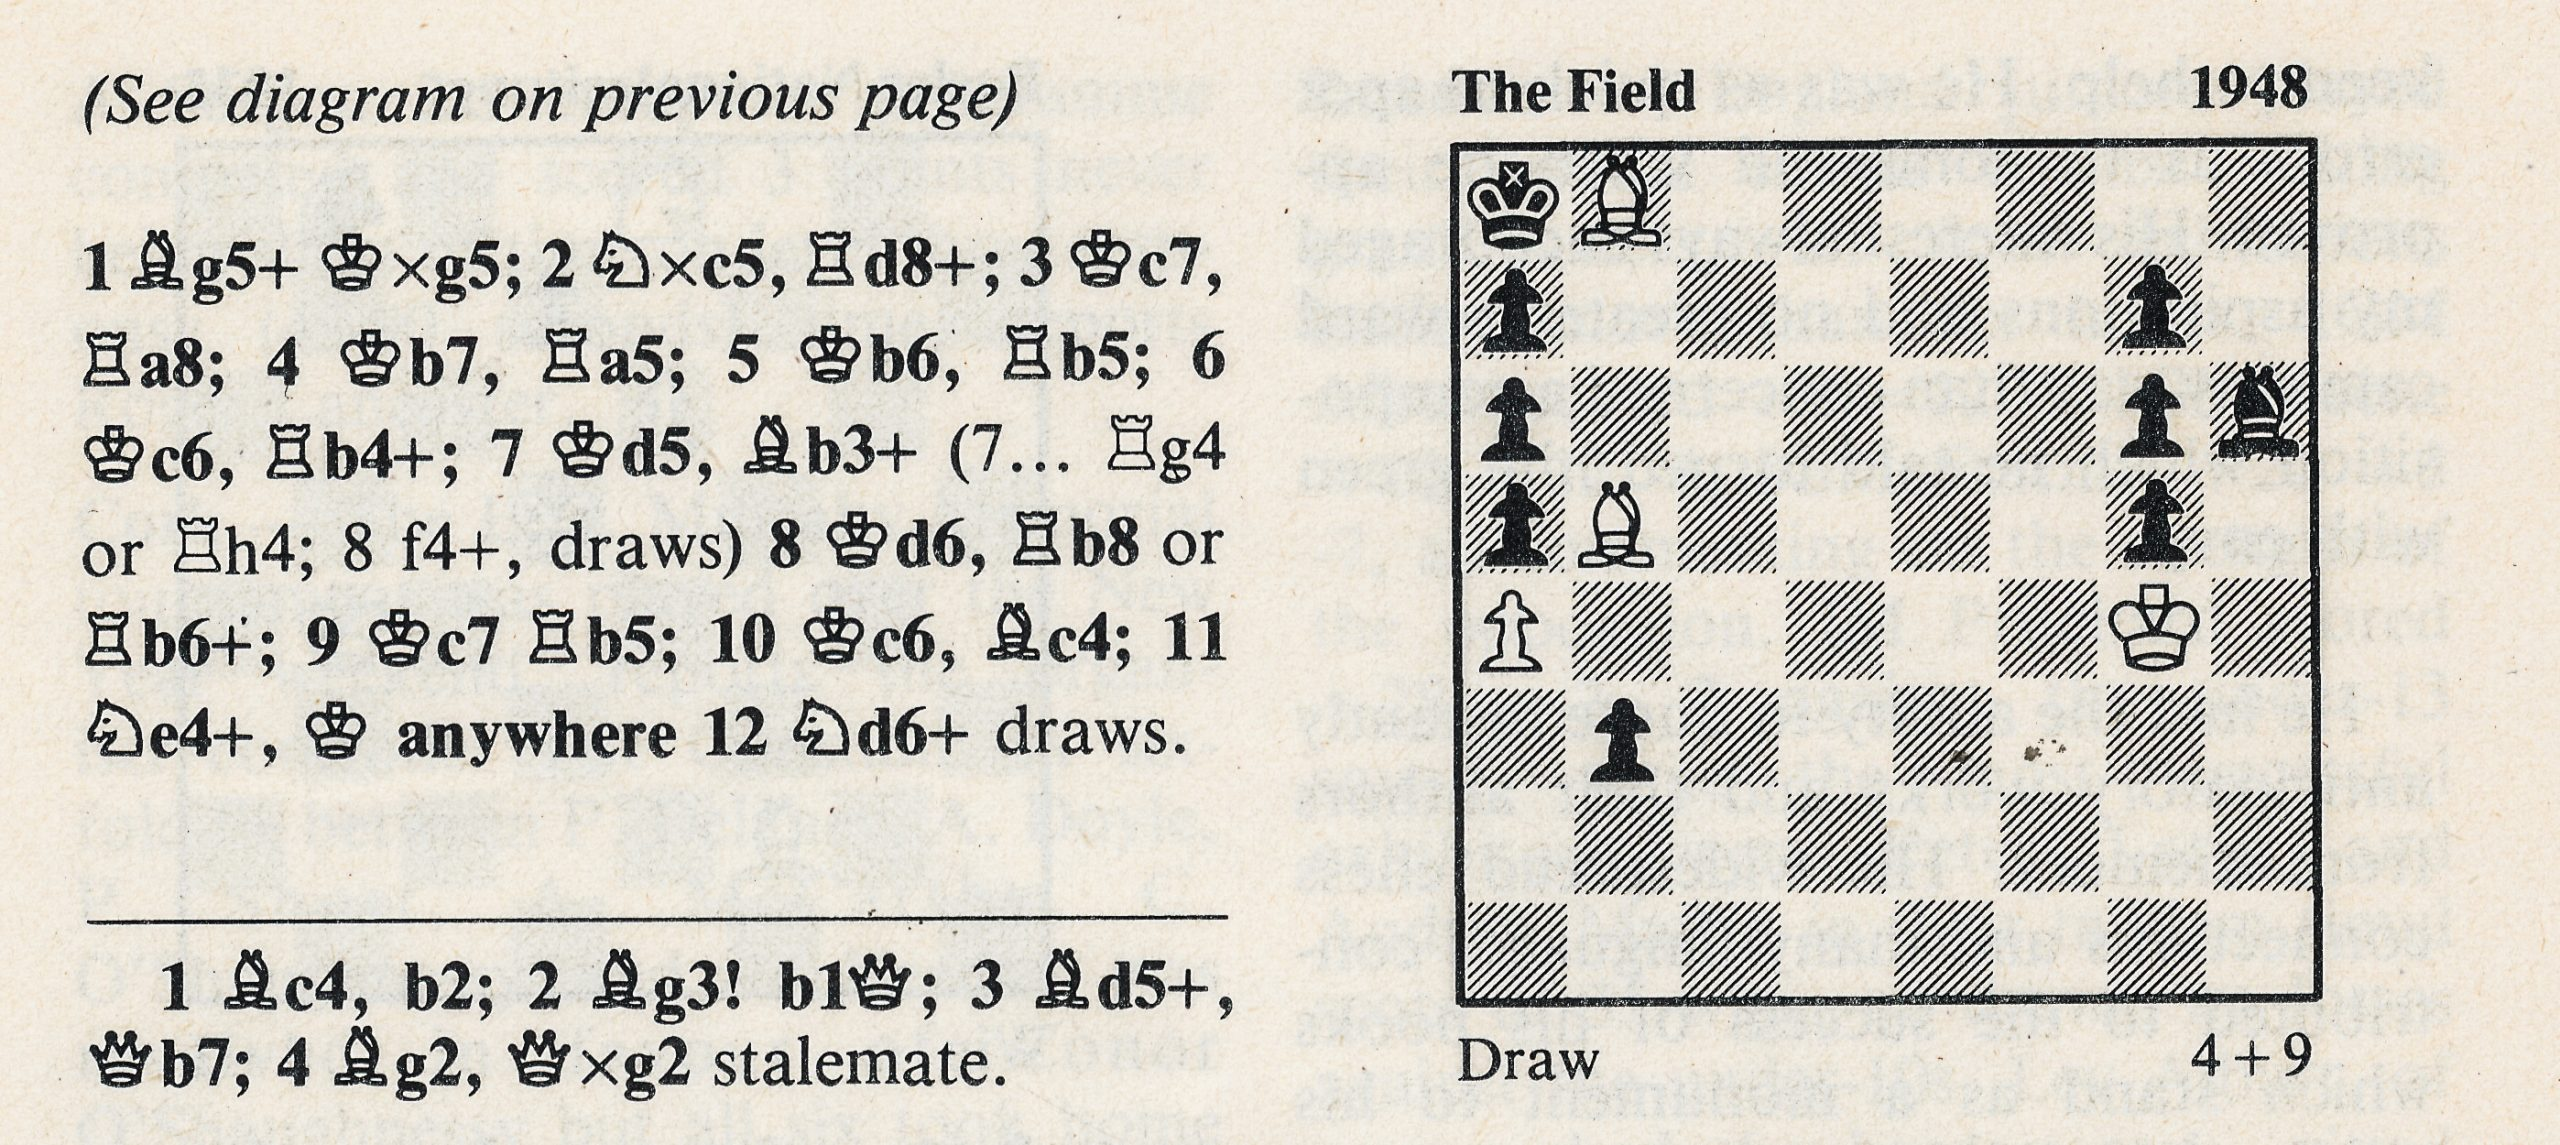 British Chess Magazine, Volume CI (101, 1981), Number 3 (March), pp. 86-88